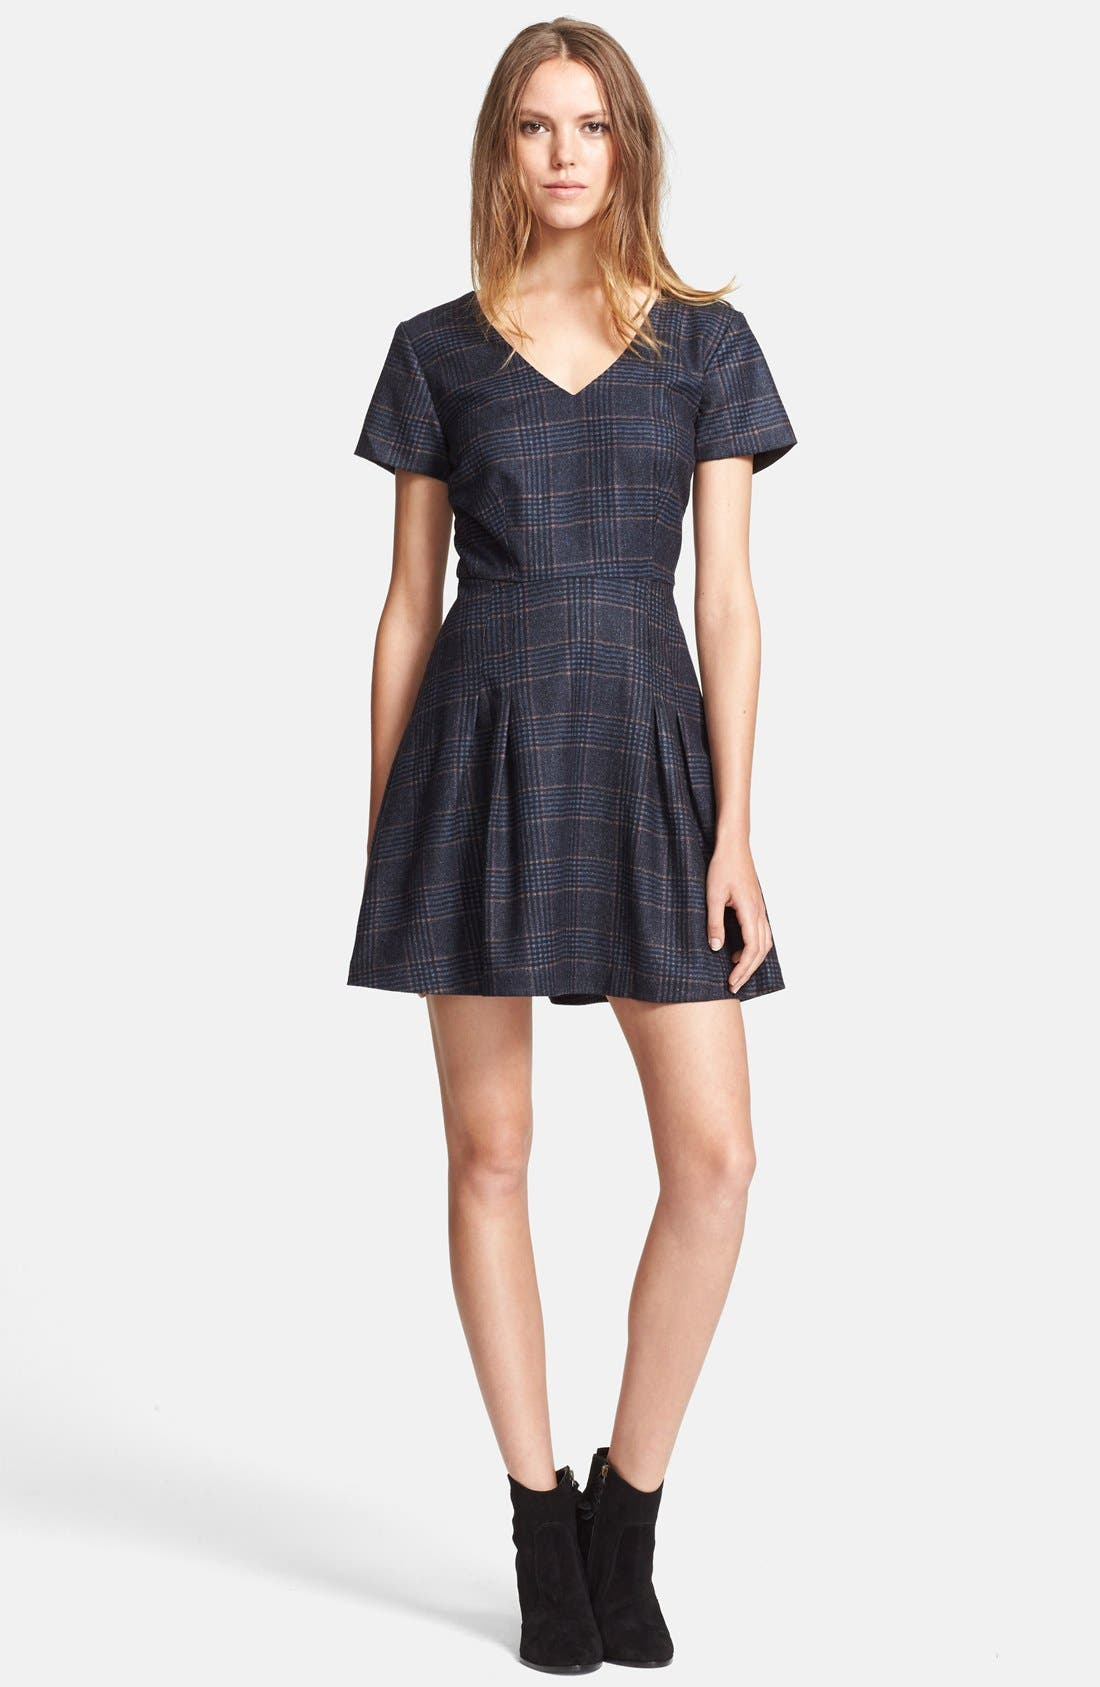 Main Image - Joie 'Raley' Plaid Fit & Flare Dress